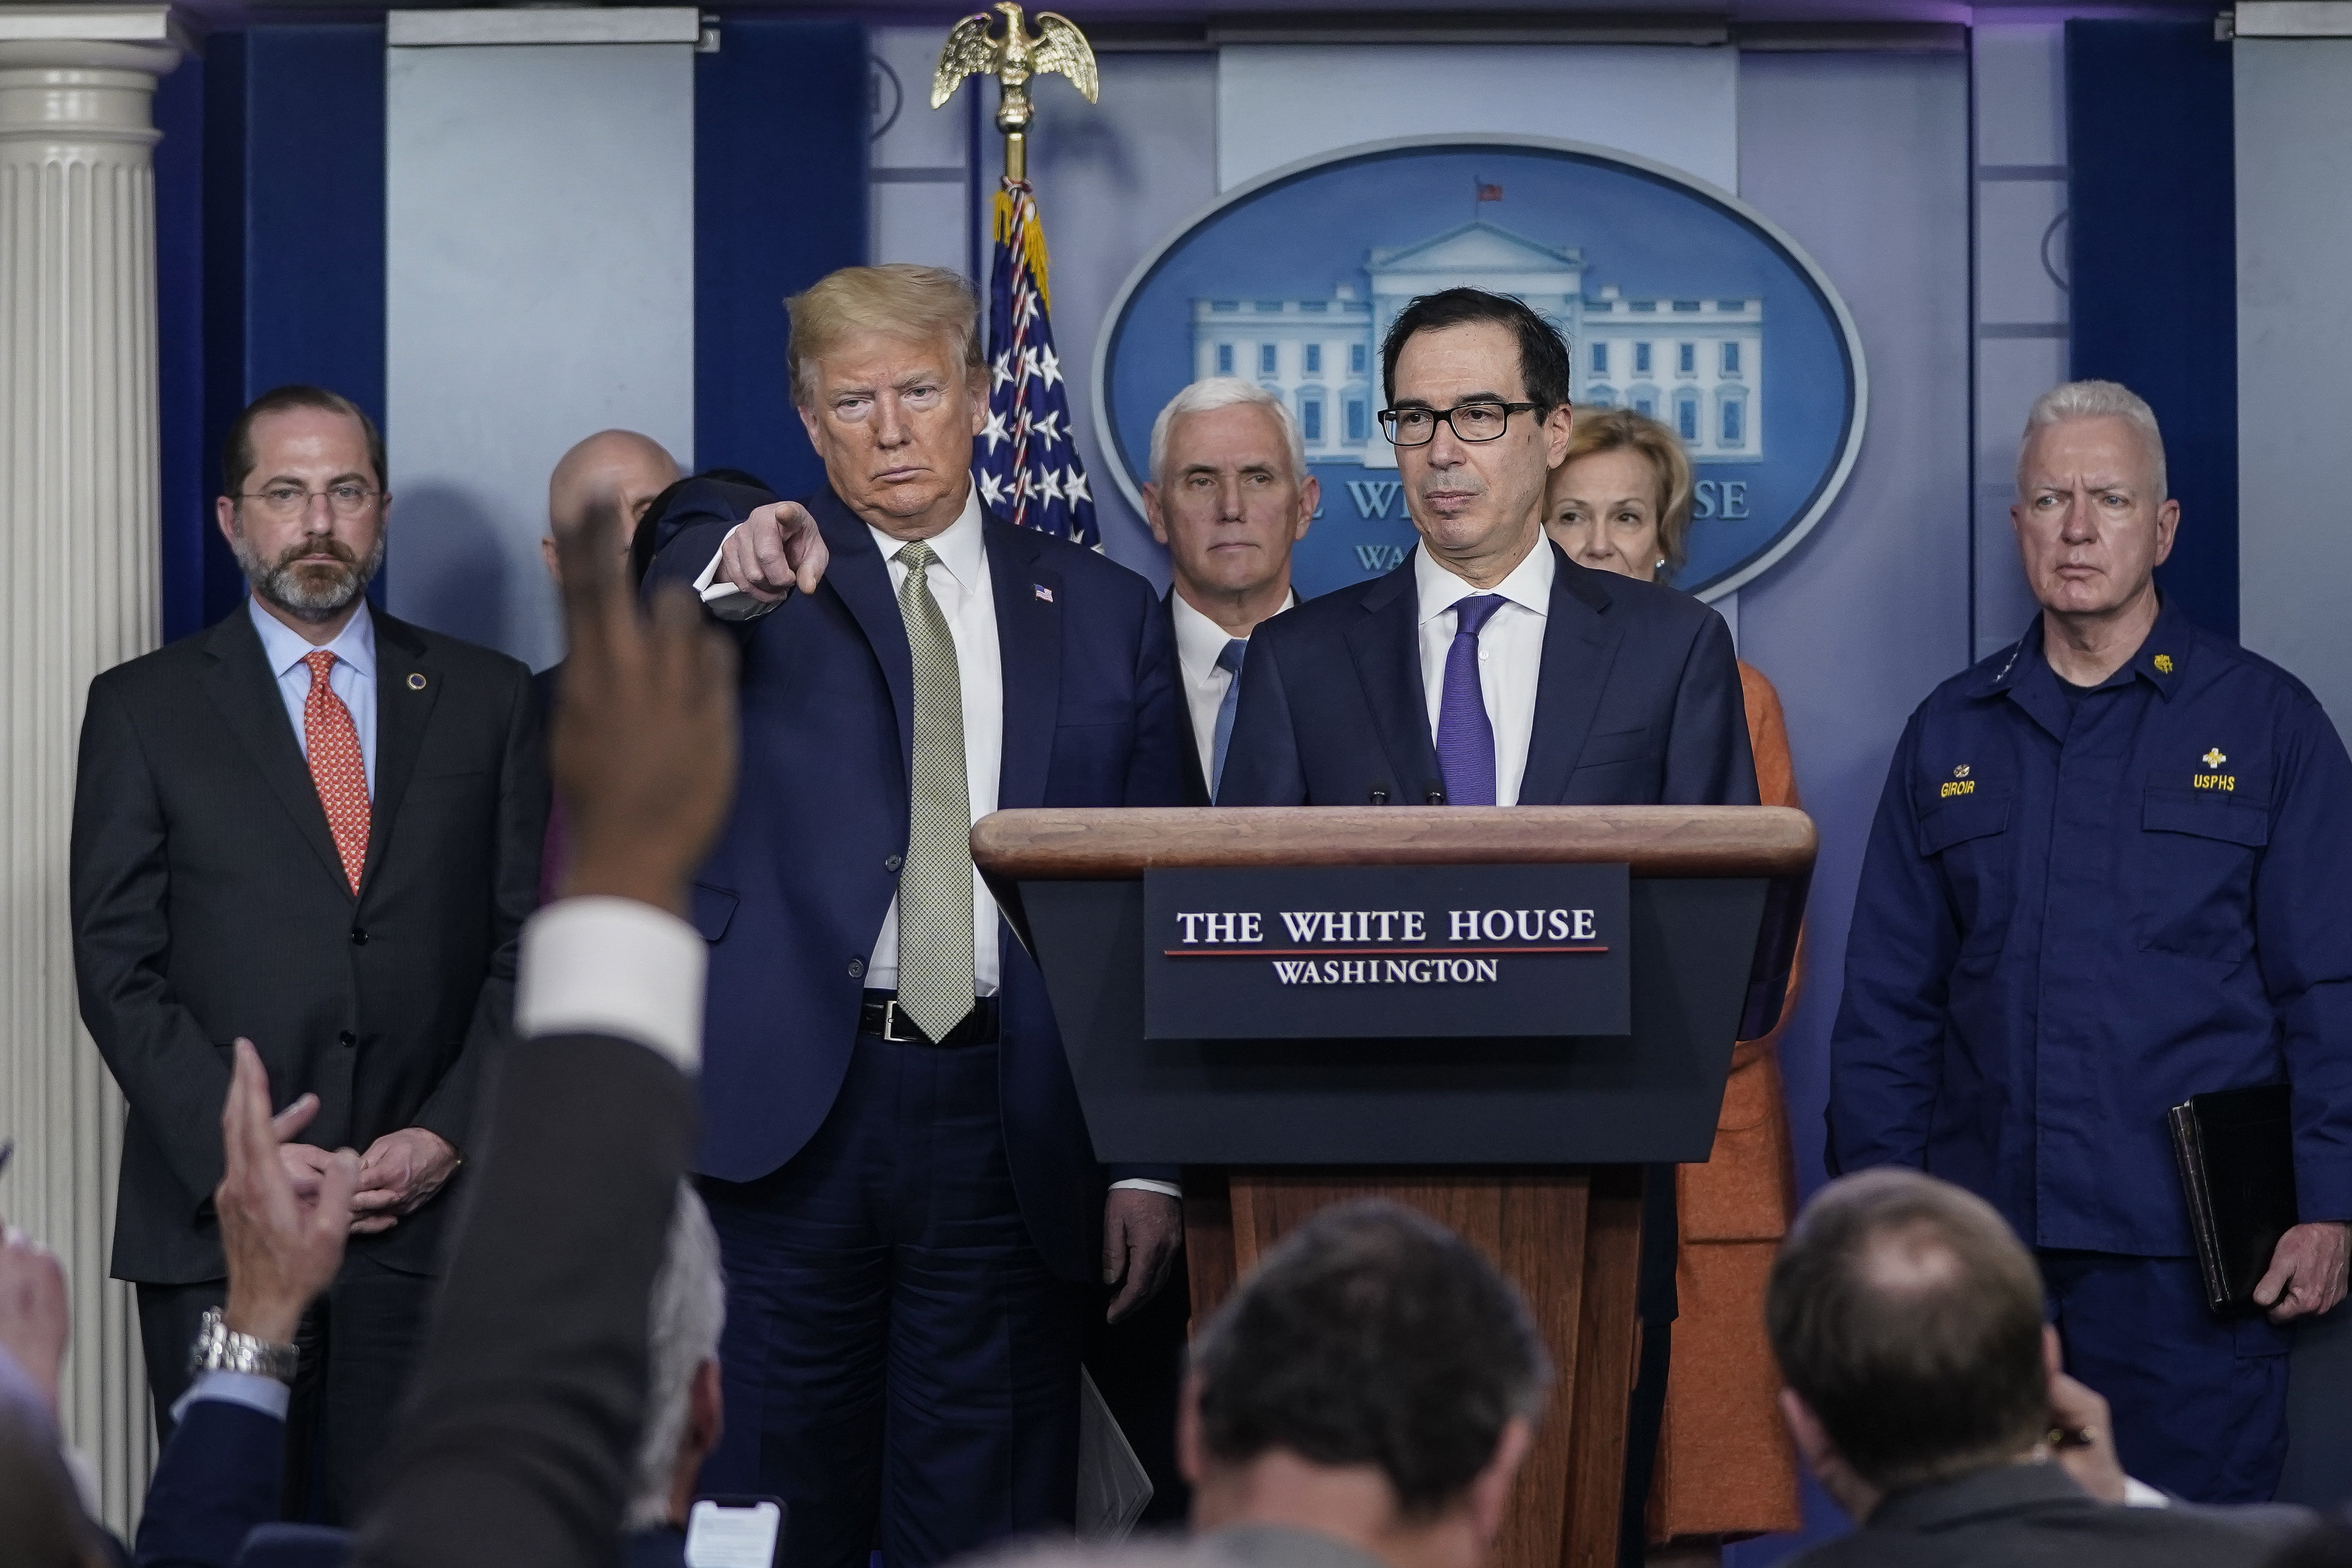 WASHINGTON, DC - MARCH 17: U.S. President Donald Trump and Treasury Secretary Steven Mnuchin, joined by members of the Coronavirus Task Force, field questions about the coronavirus outbreak in the press briefing room at the White House on March 17, 2020 in Washington, DC. The Trump administration is considering an $850 billion stimulus package to counter the economic fallout as the coronavirus spreads. (Photo by Drew Angerer/Getty Images)